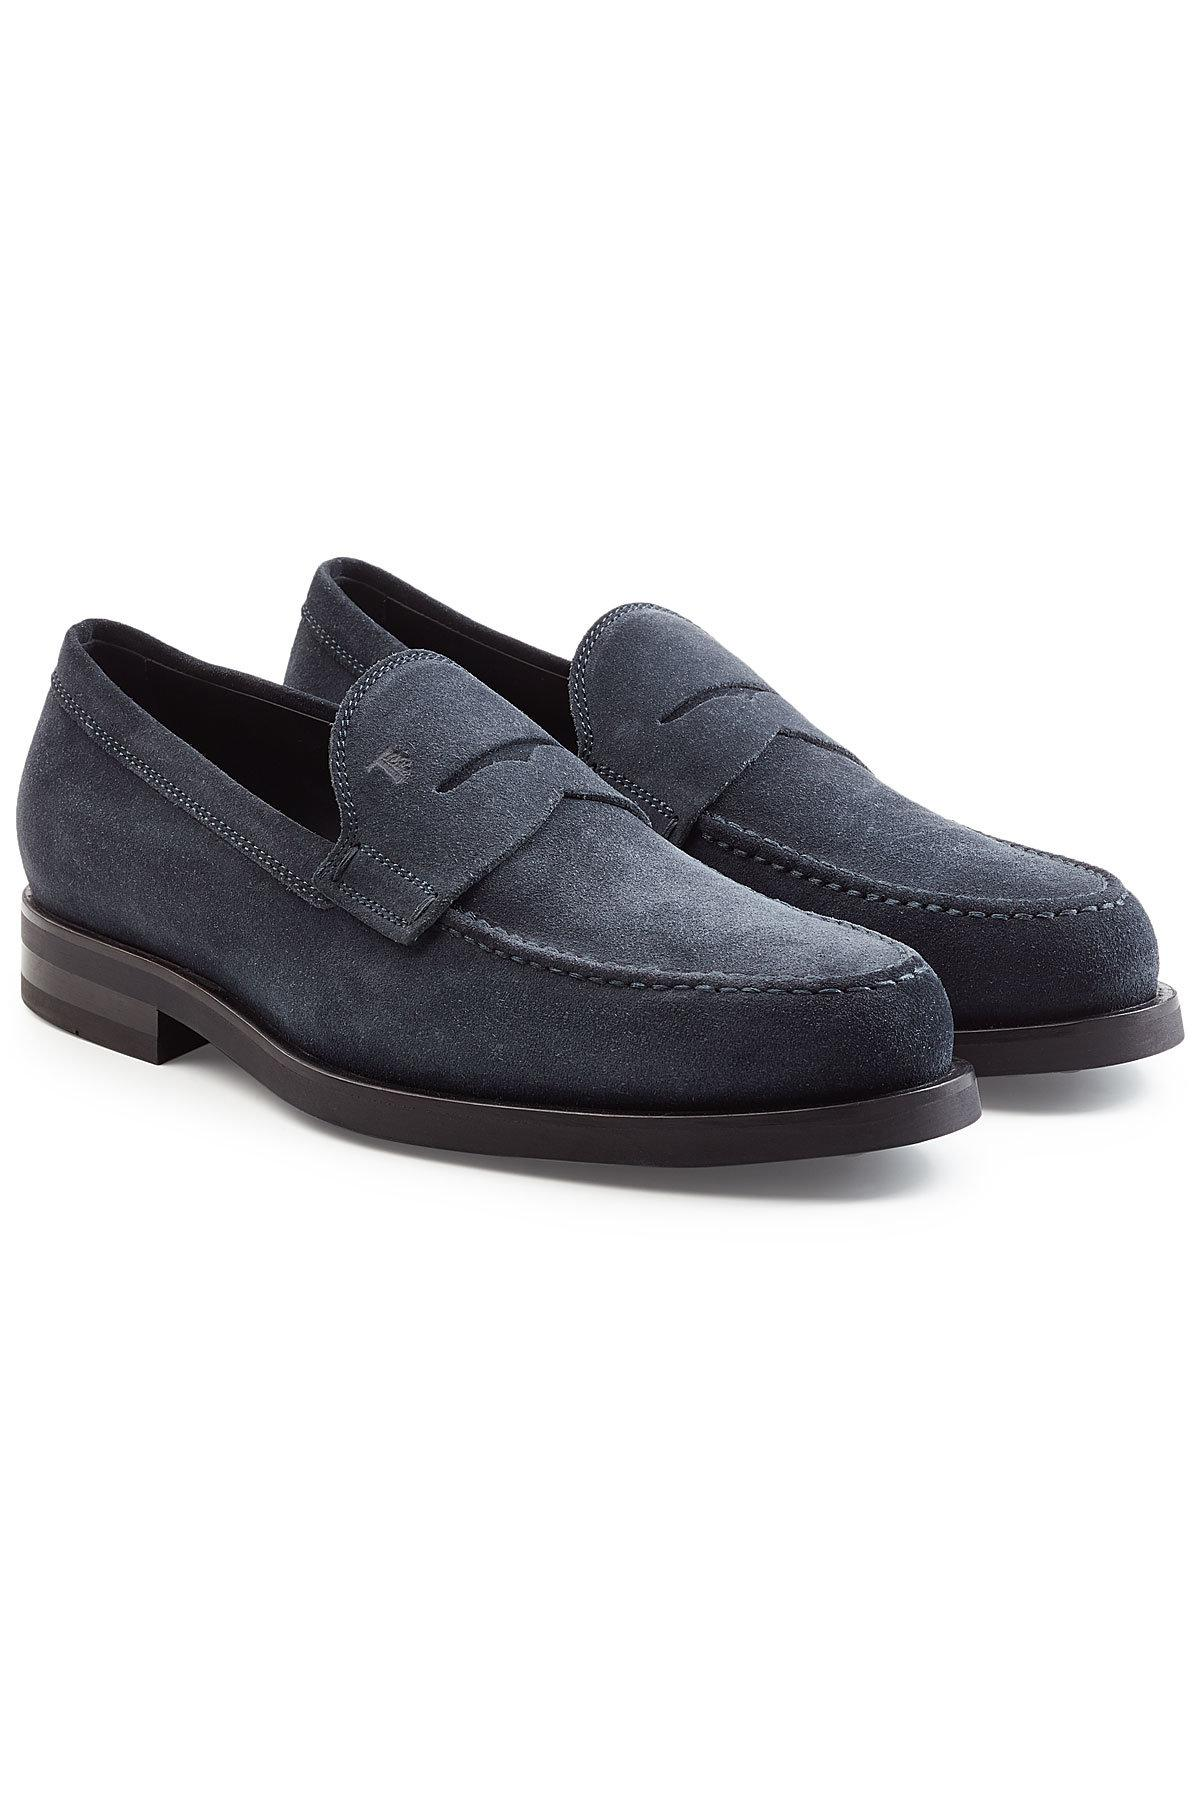 Tod'sTods Penny loafer A0001 suede purple hand-sewn quAdA1zrsC